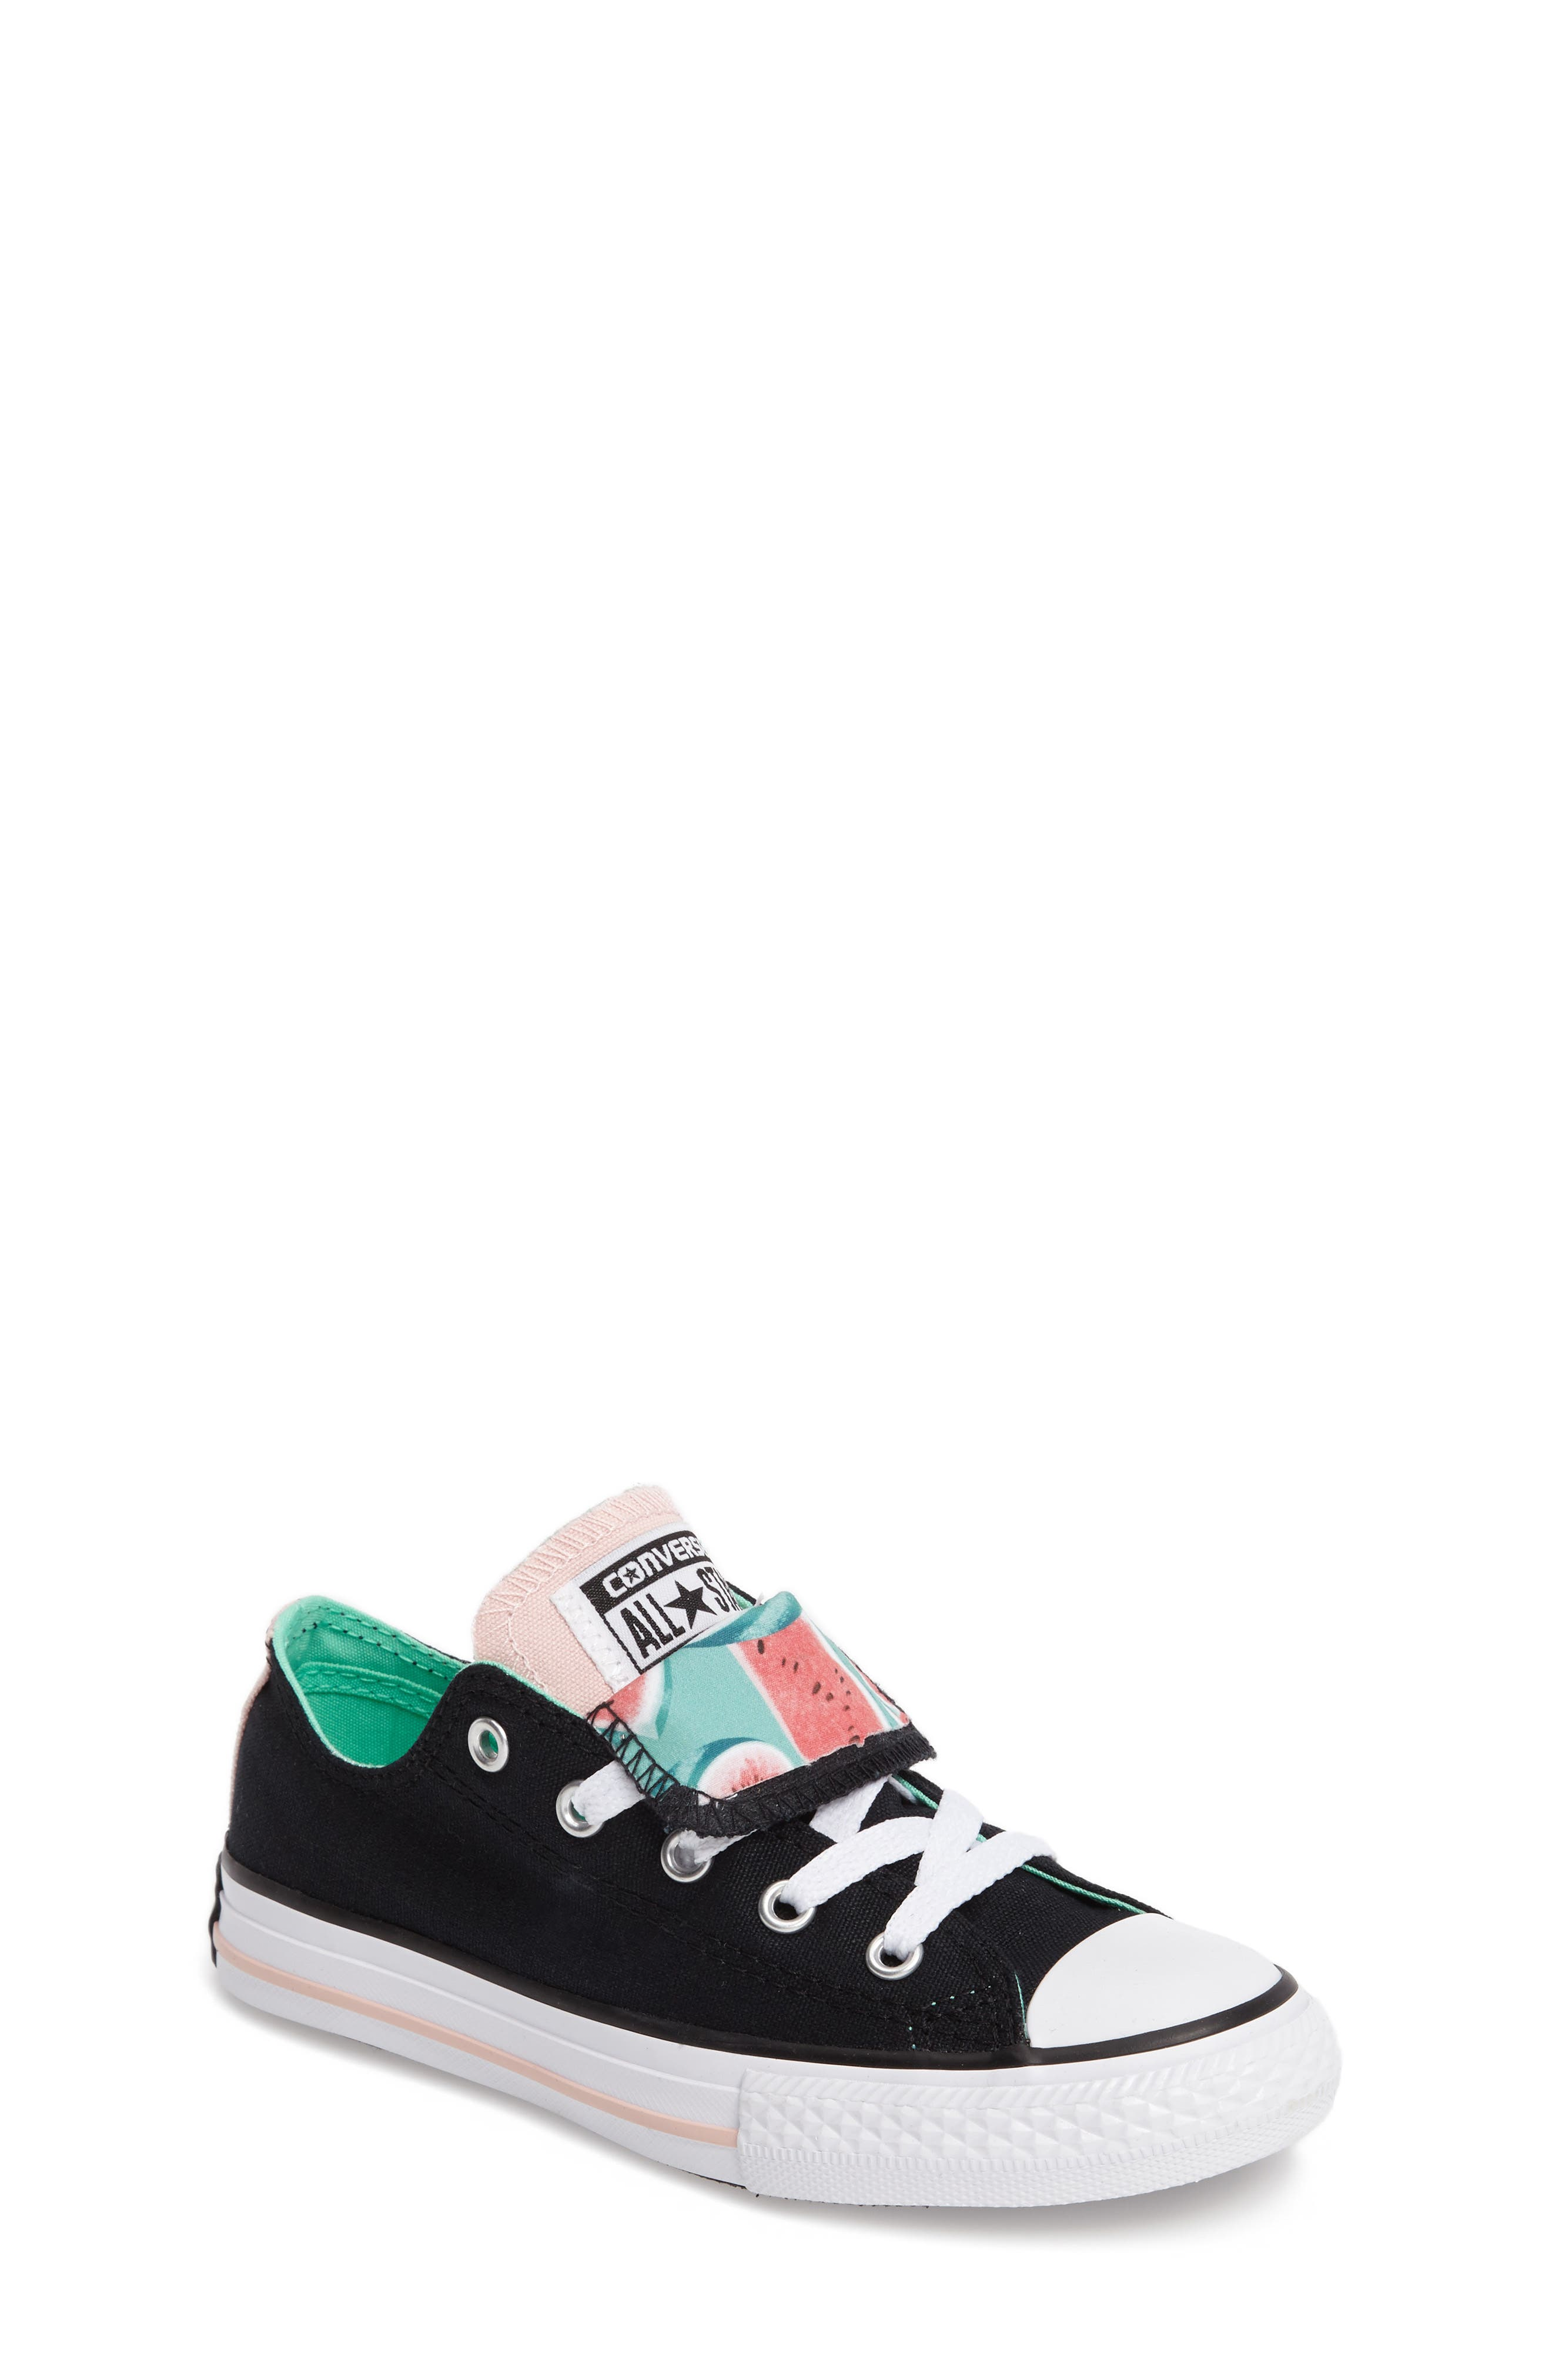 Chuck Taylor<sup>®</sup> All Star<sup>®</sup> Watermelon Print Sneaker,                         Main,                         color, Black